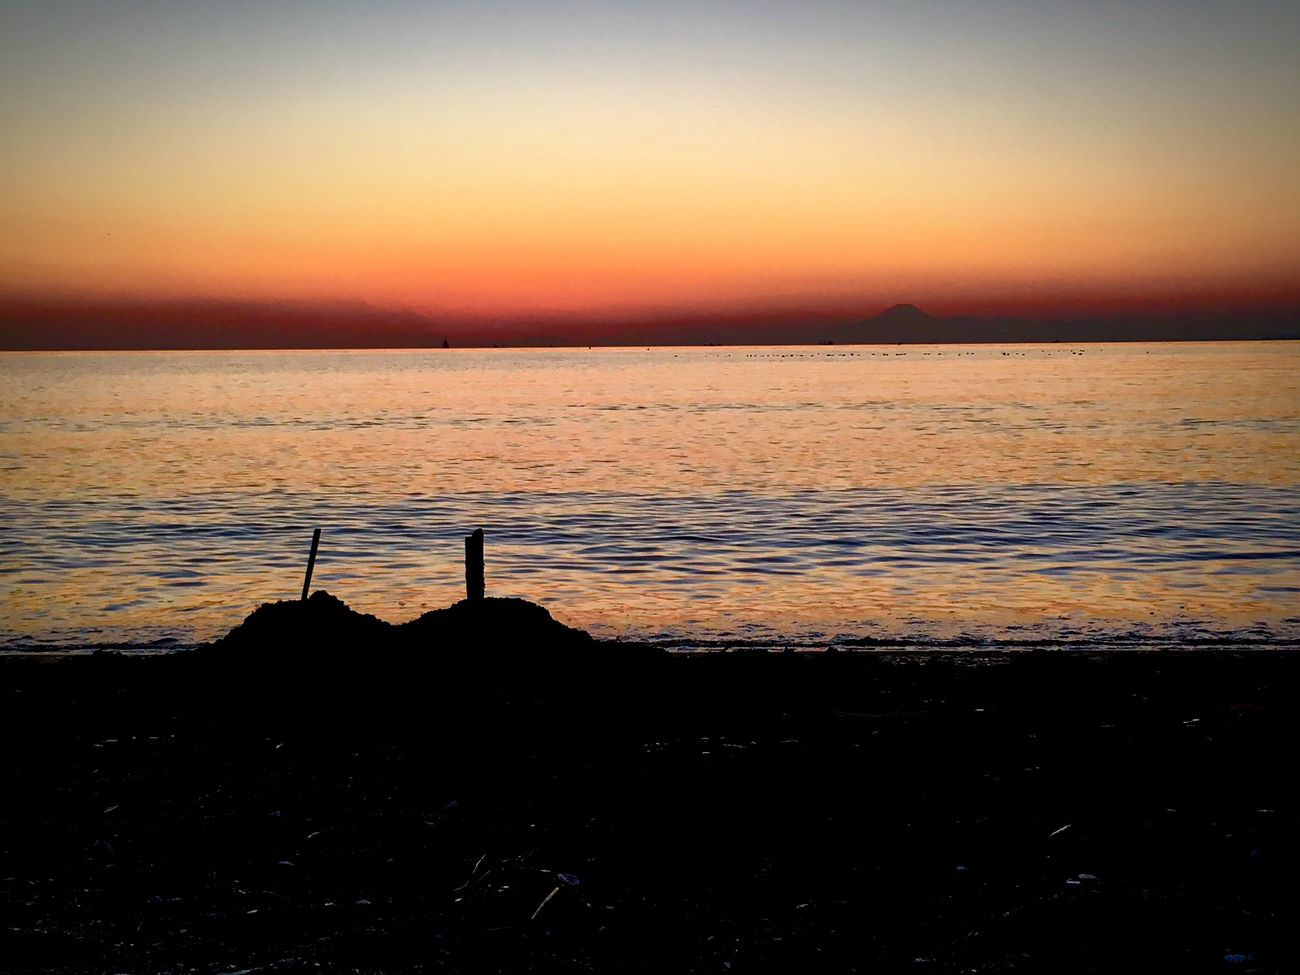 Mount Fuji Views In The Distance Sunset Sea Water Silhouette Tranquility Scenics Sand Castle Outdoors Beach Mount FuJi Tokyo Bay (null)Tokyo Ocean View Chiba Japan Horizon Over Water Nature Clear Sky